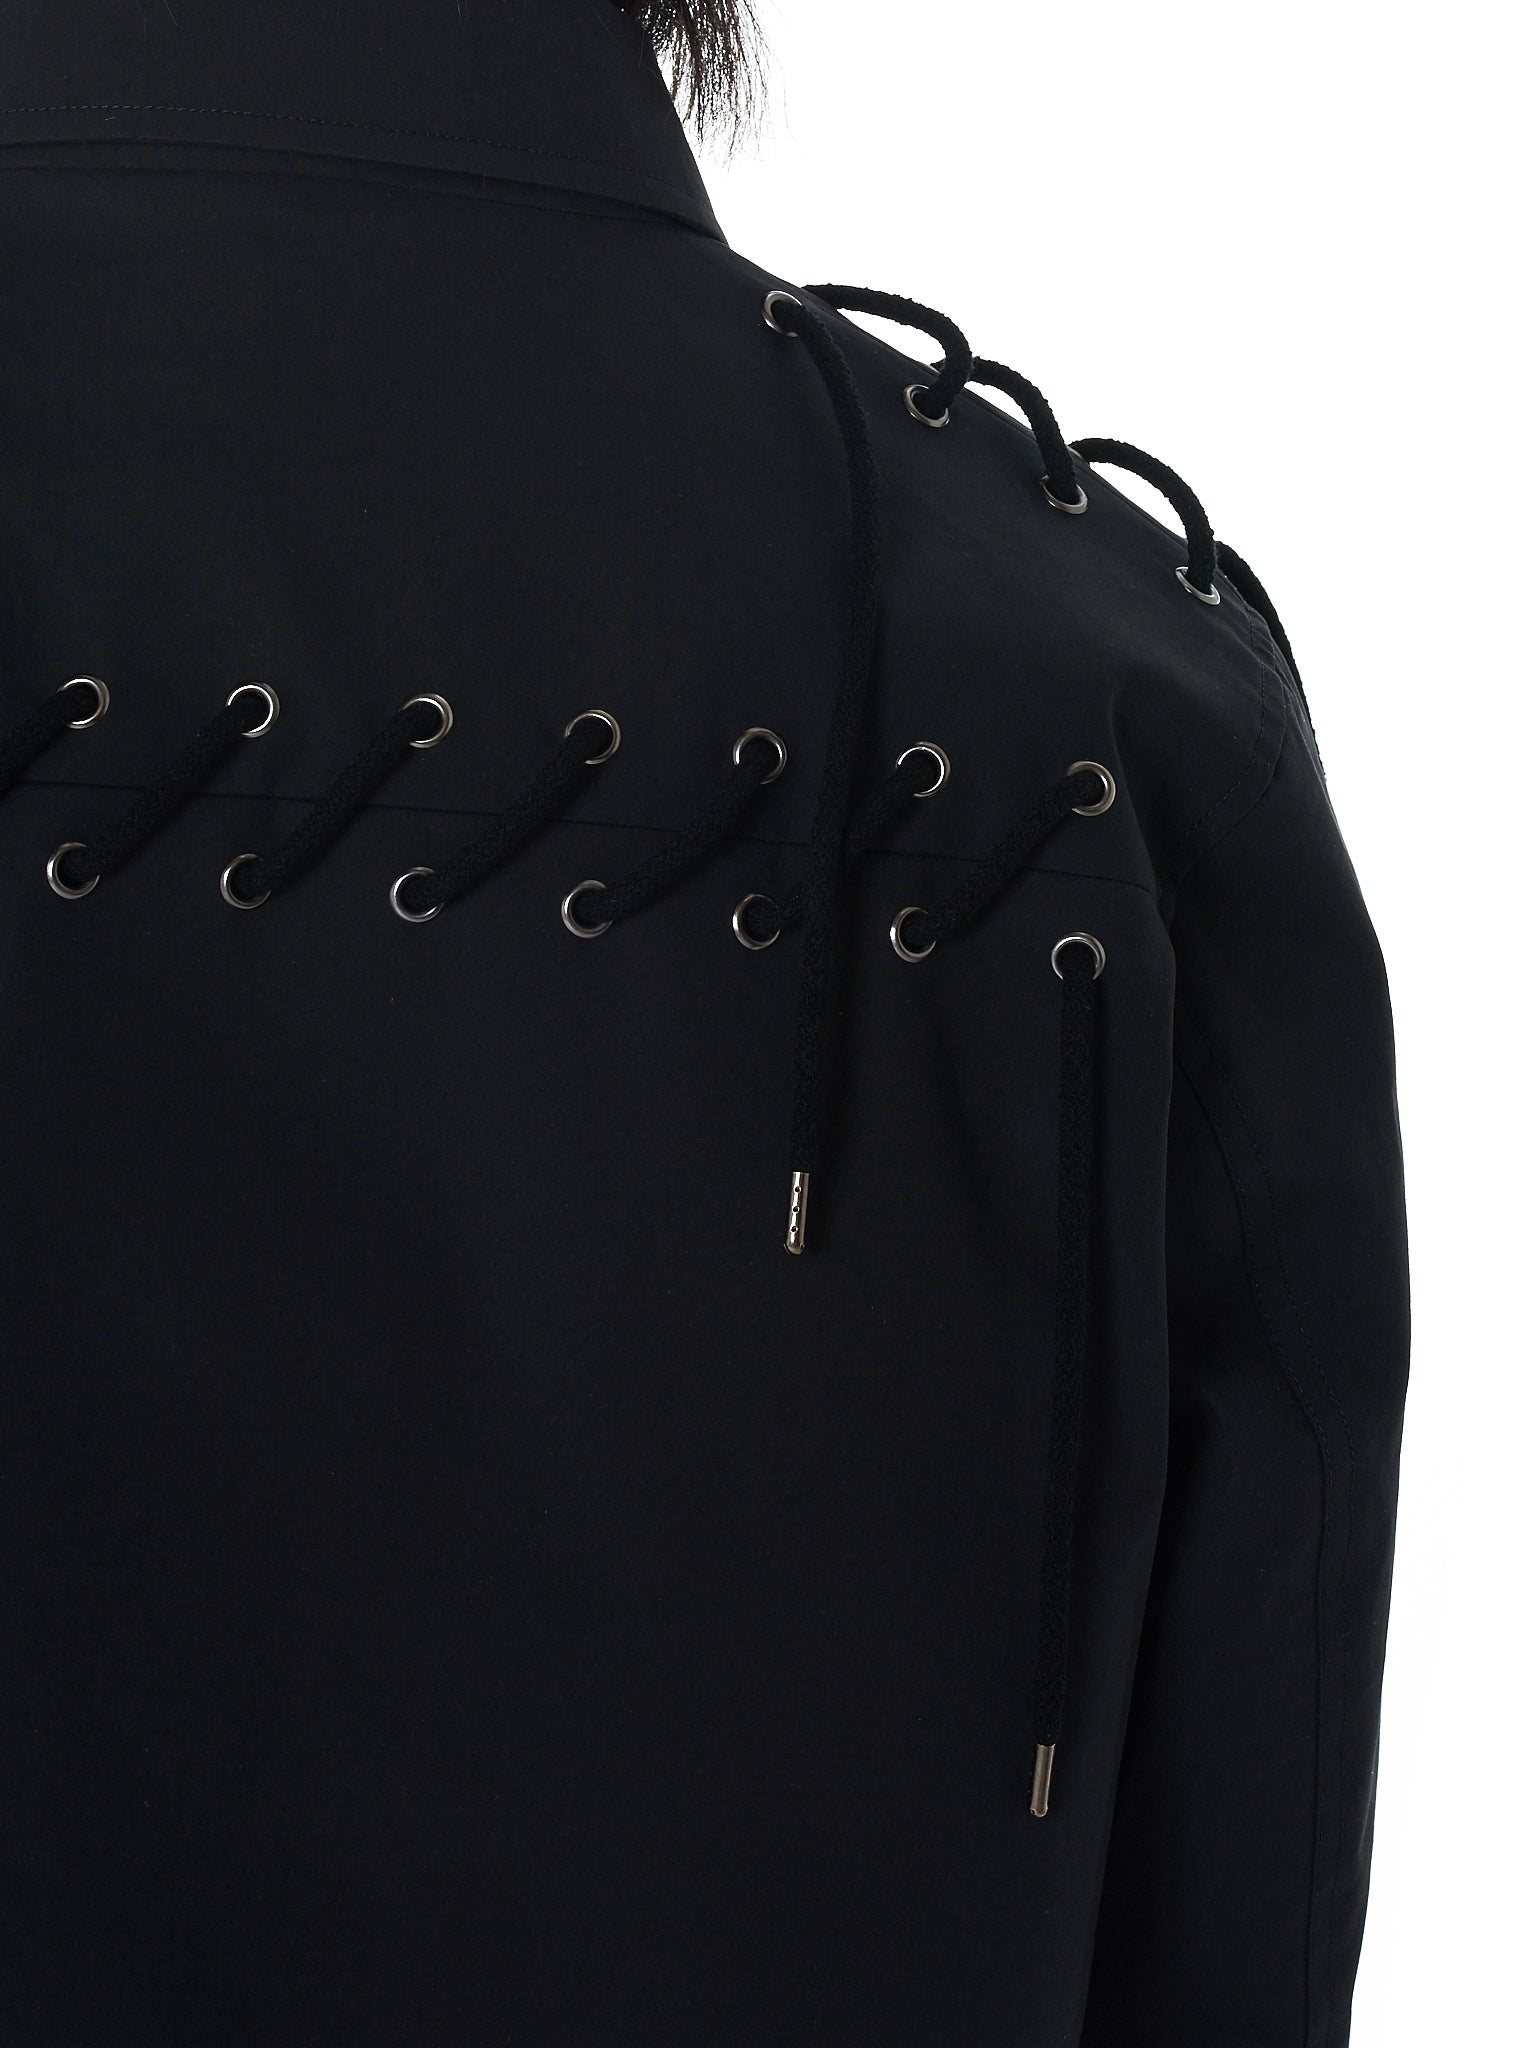 Craig Green Work Jacket - Hlorenzo Detail 2